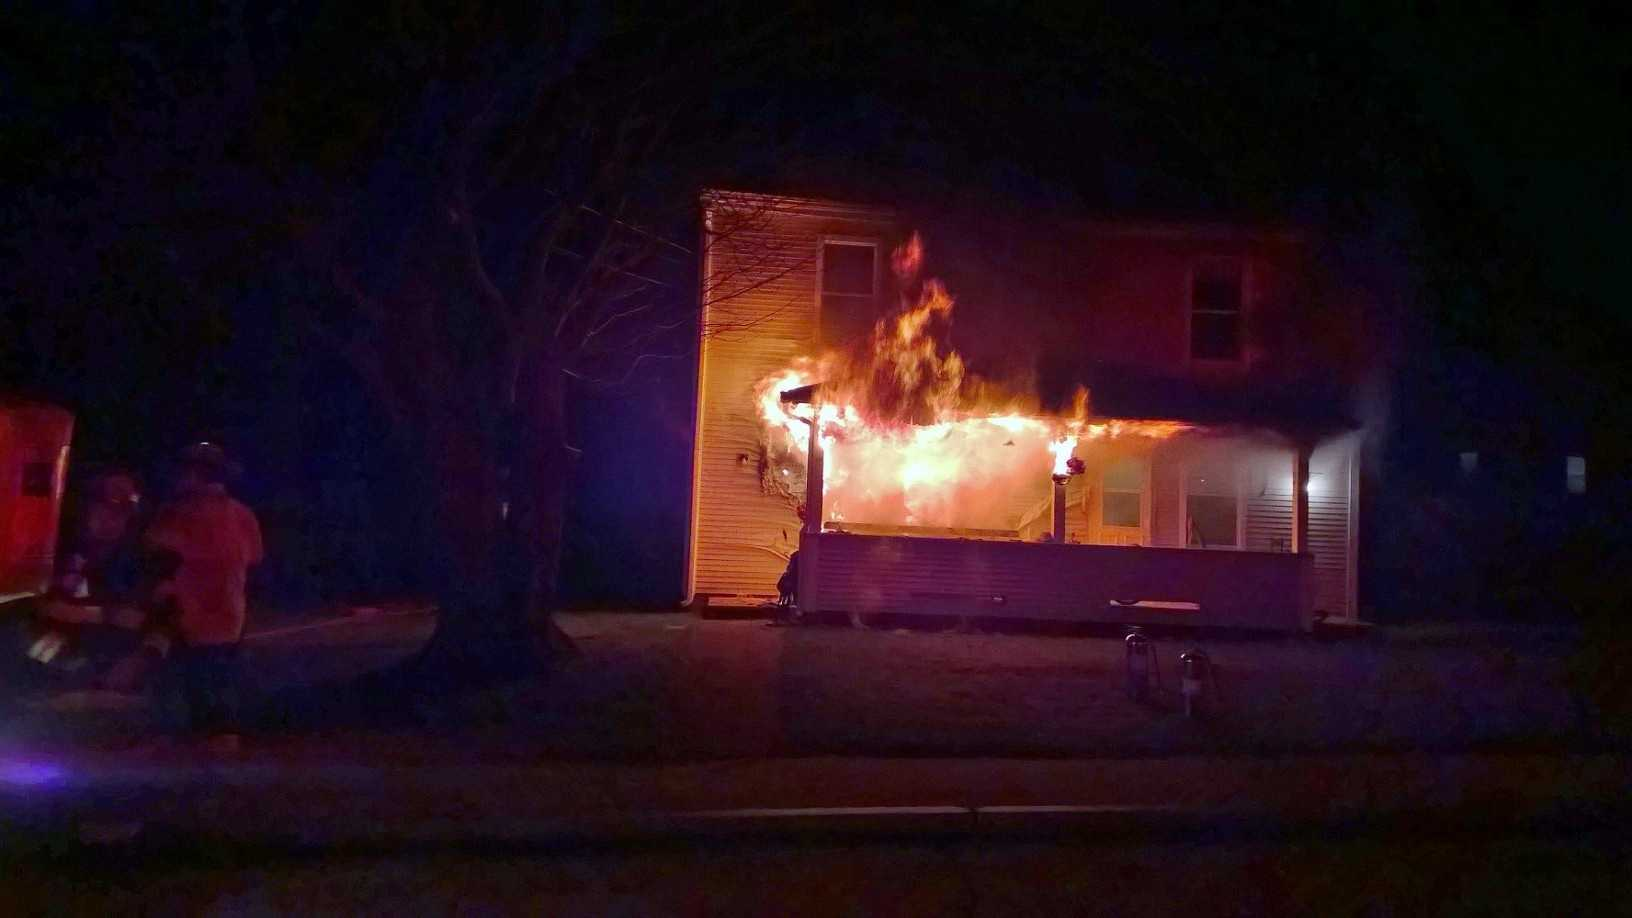 A pet cat was killed in a fire at an apartment in Jaffrey Sunday night.